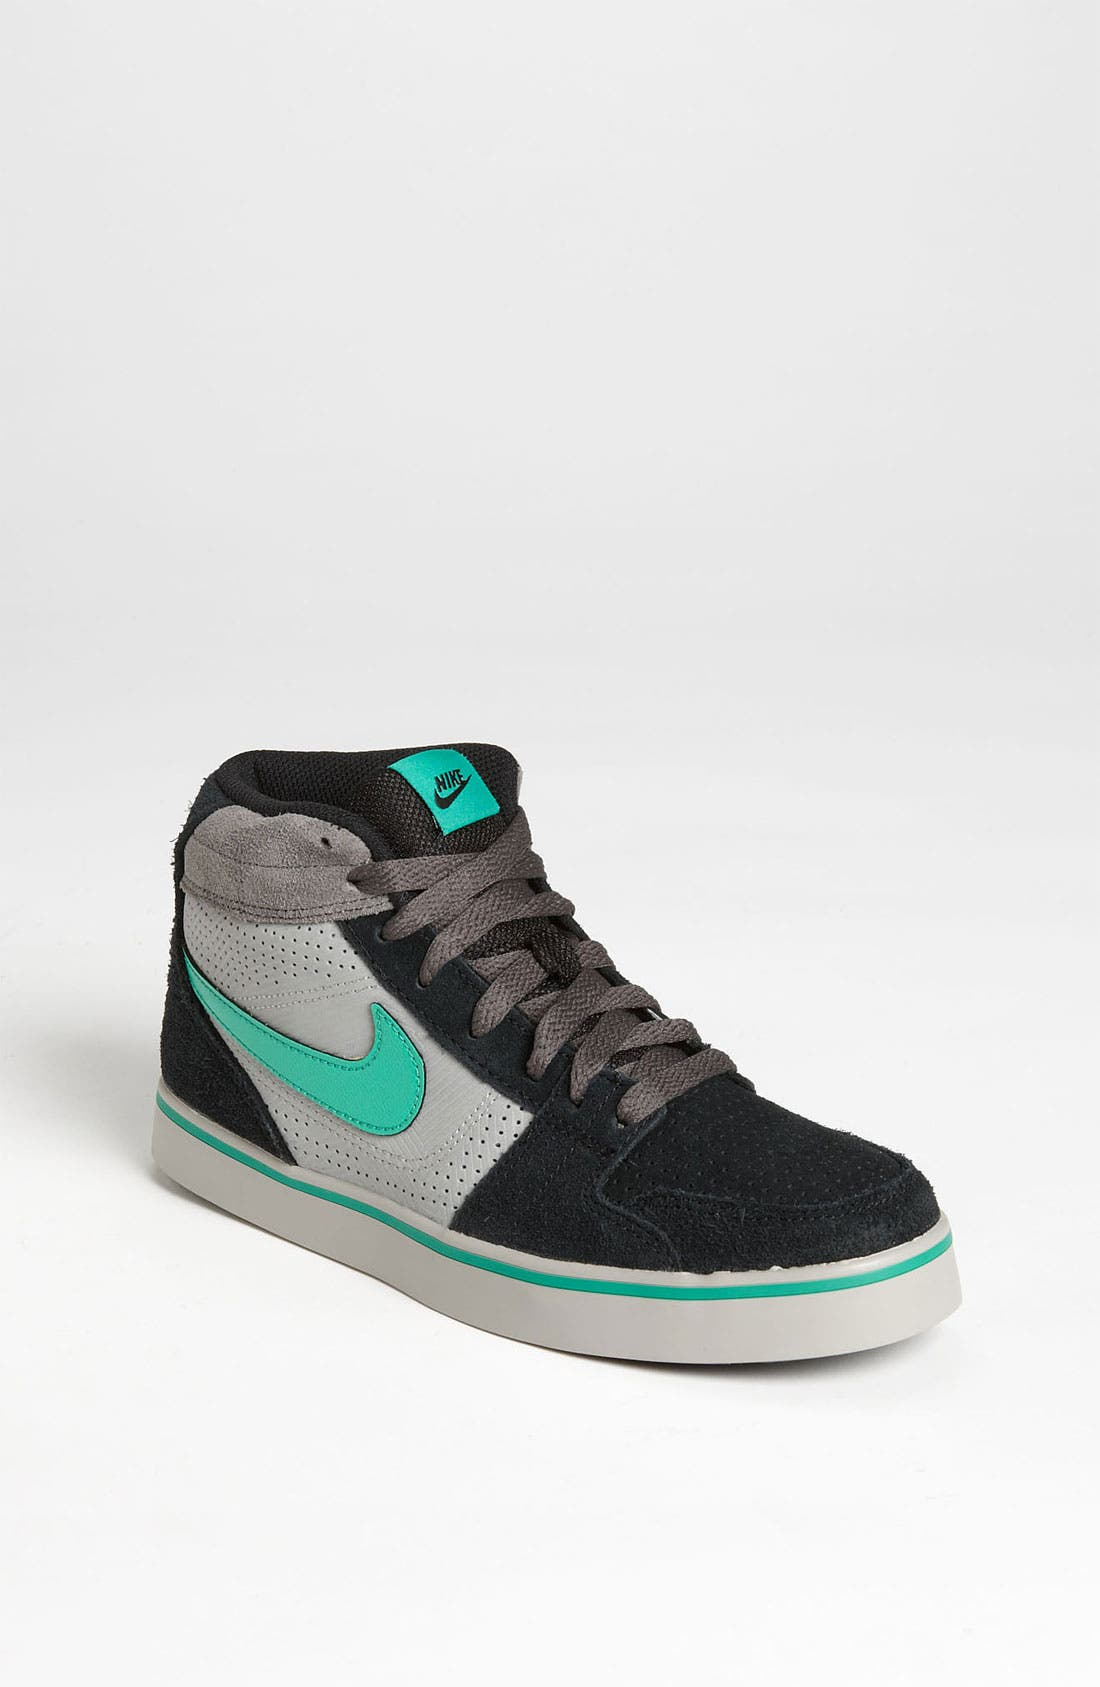 Alternate Image 1 Selected - Nike 'Ruckus Mid Jr. 6.0' Sneaker (Toddler, Little Kid & Big Kid)